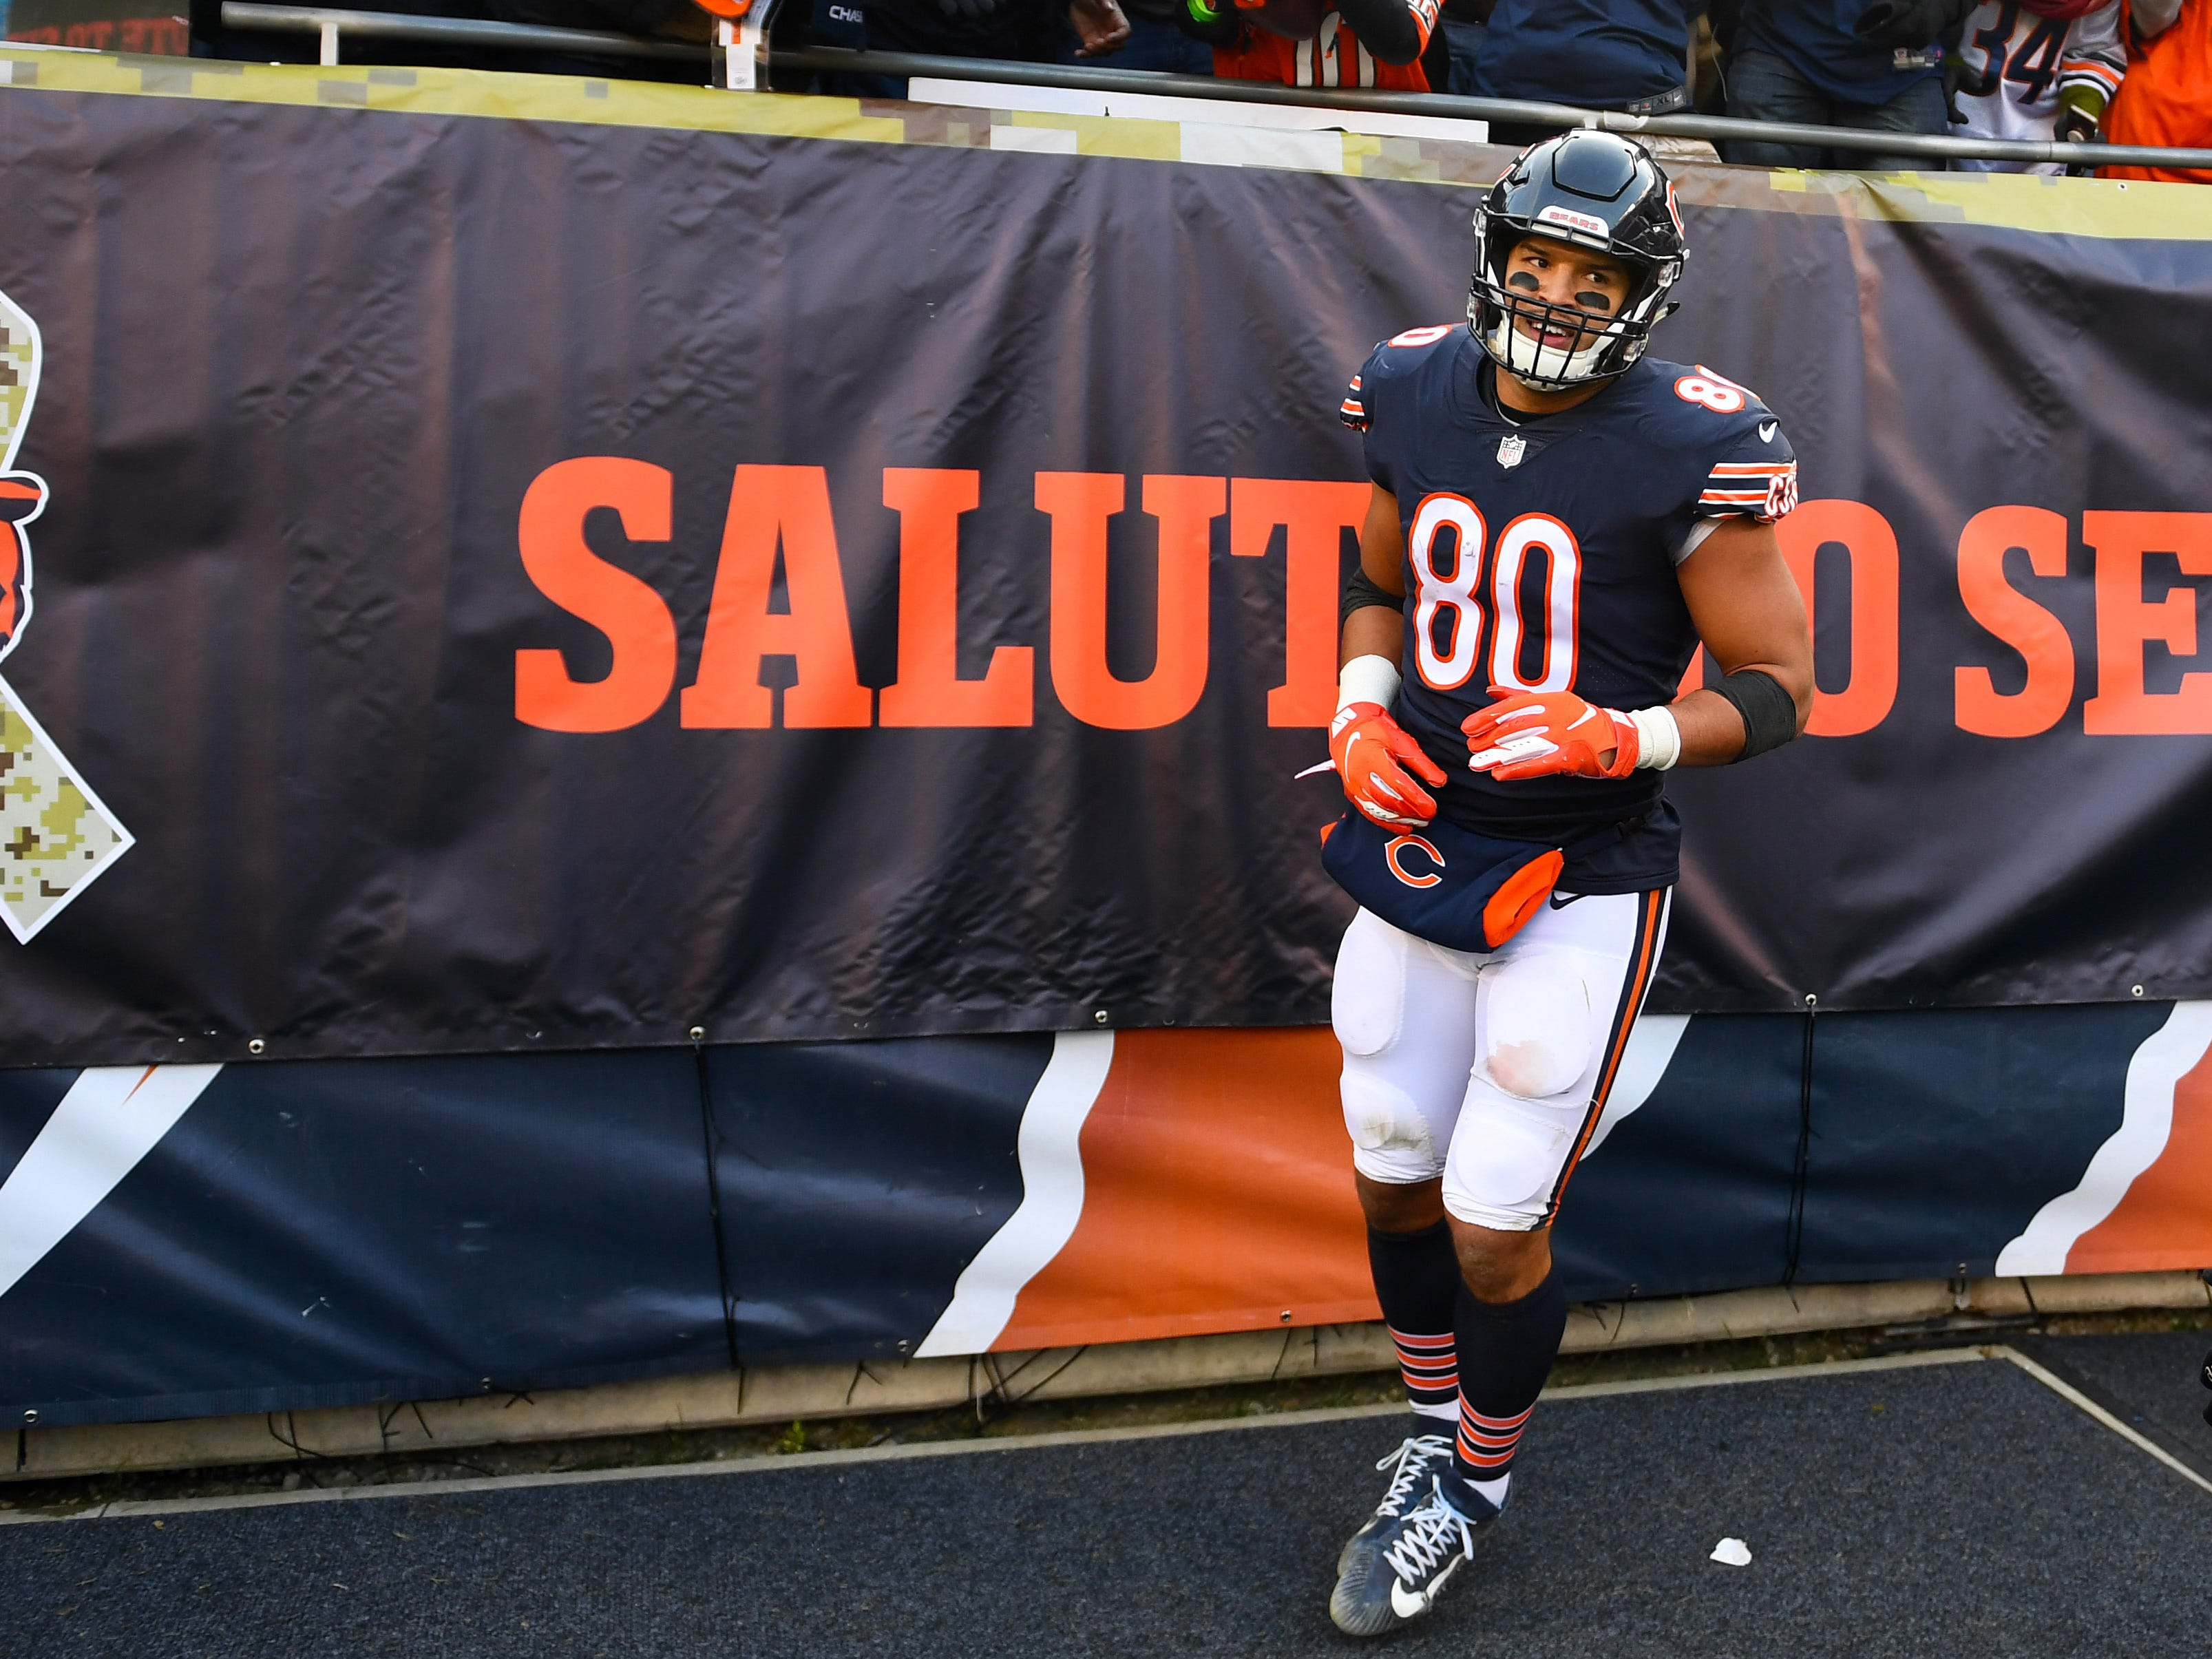 Bears tight end Trey Burton makes a catch against the Lions.